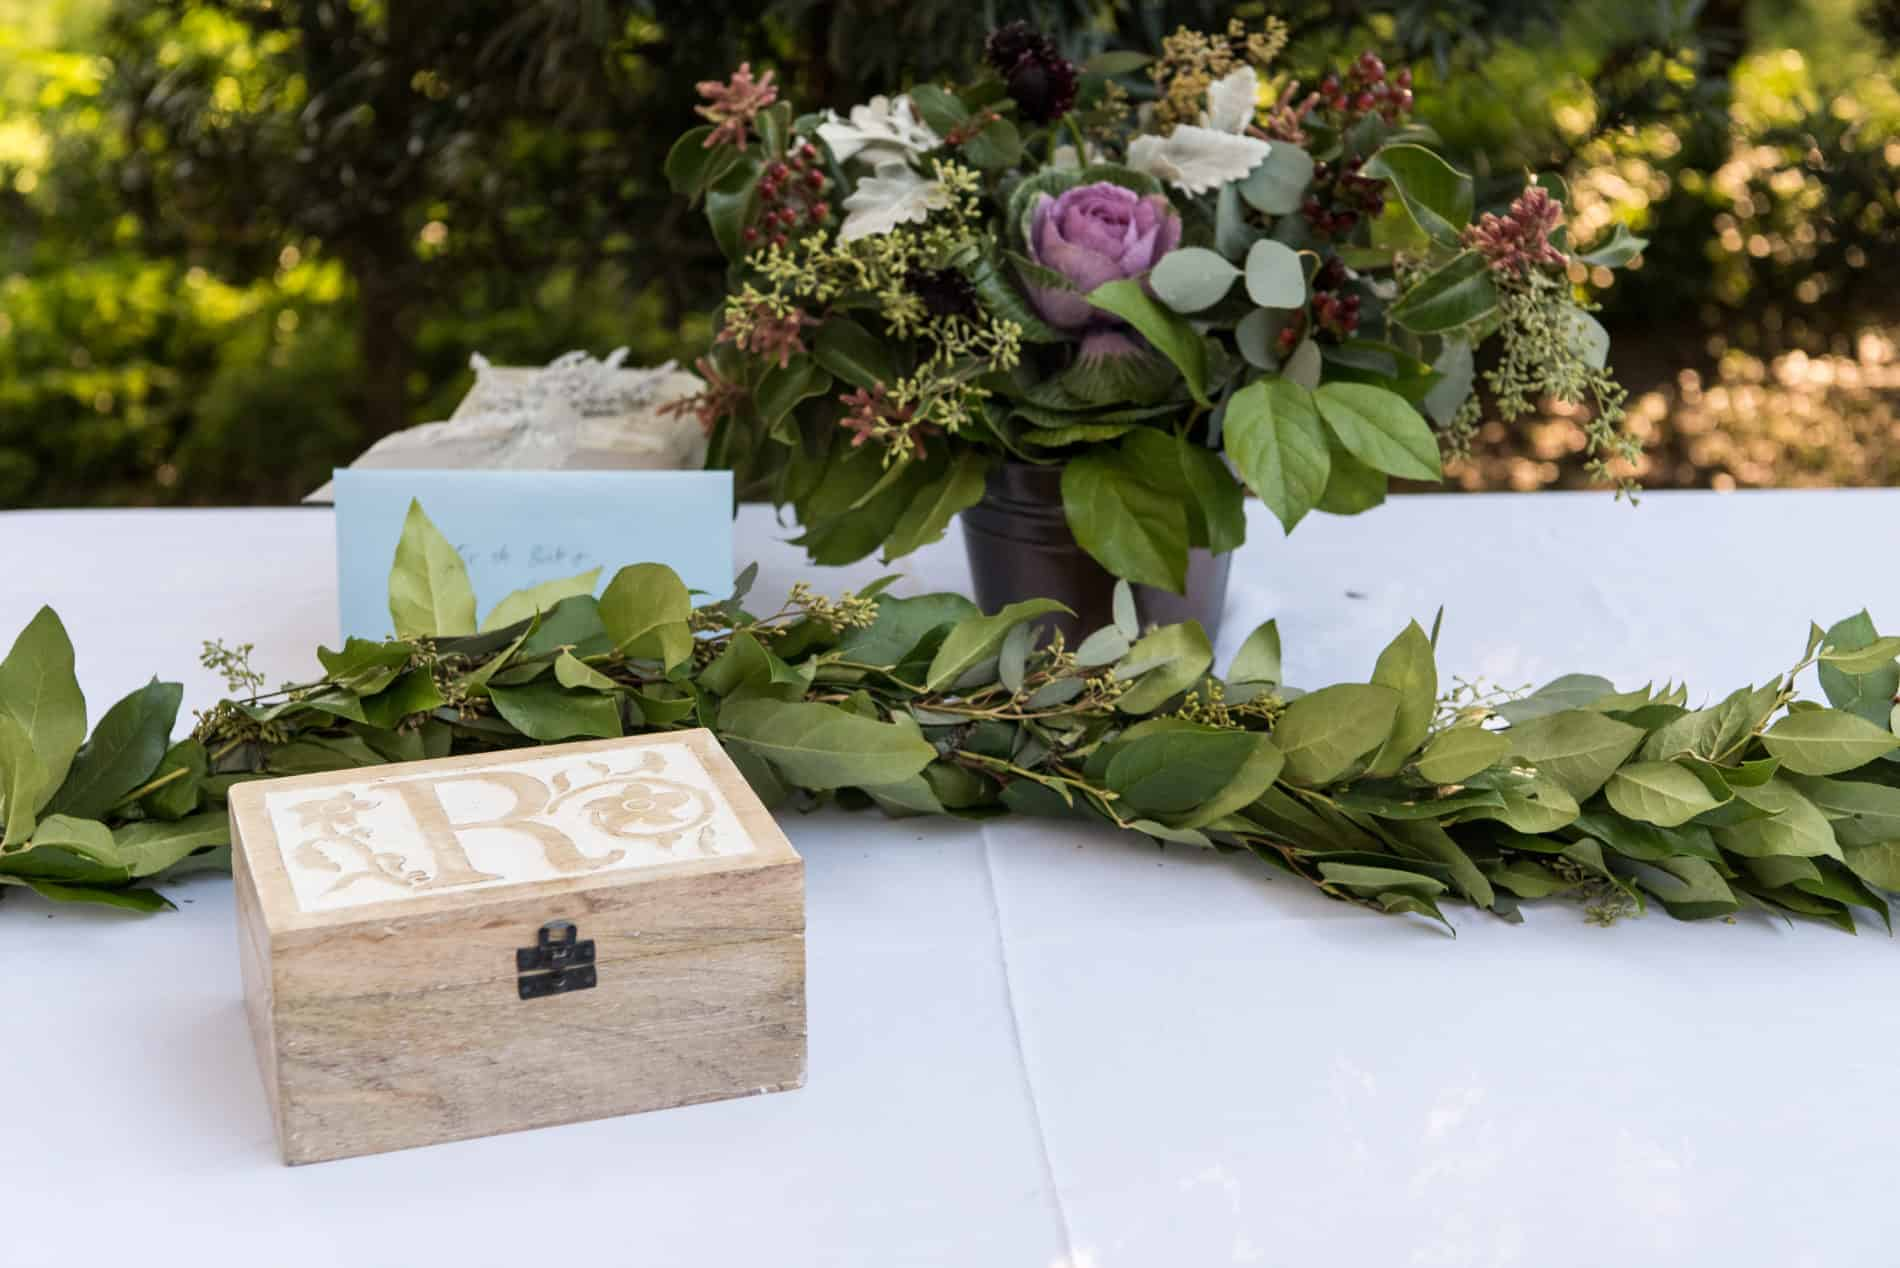 Beautiful handmade details outdoors at a wedding